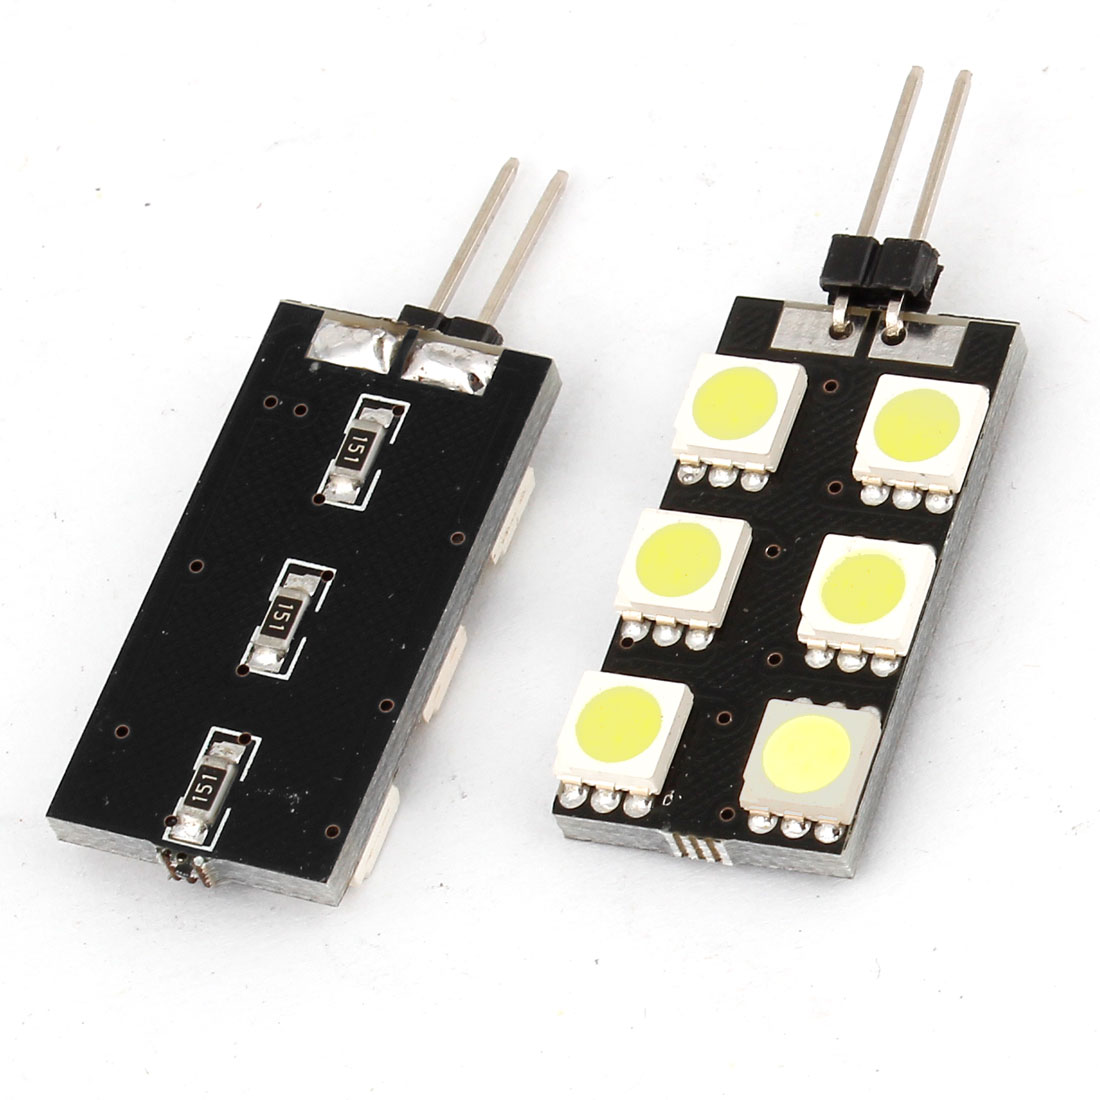 Unique Bargains 2 Pcs G4 Side Pin 5050 SMD 6 LED White Light Signal Spare Bulbs for Automobile